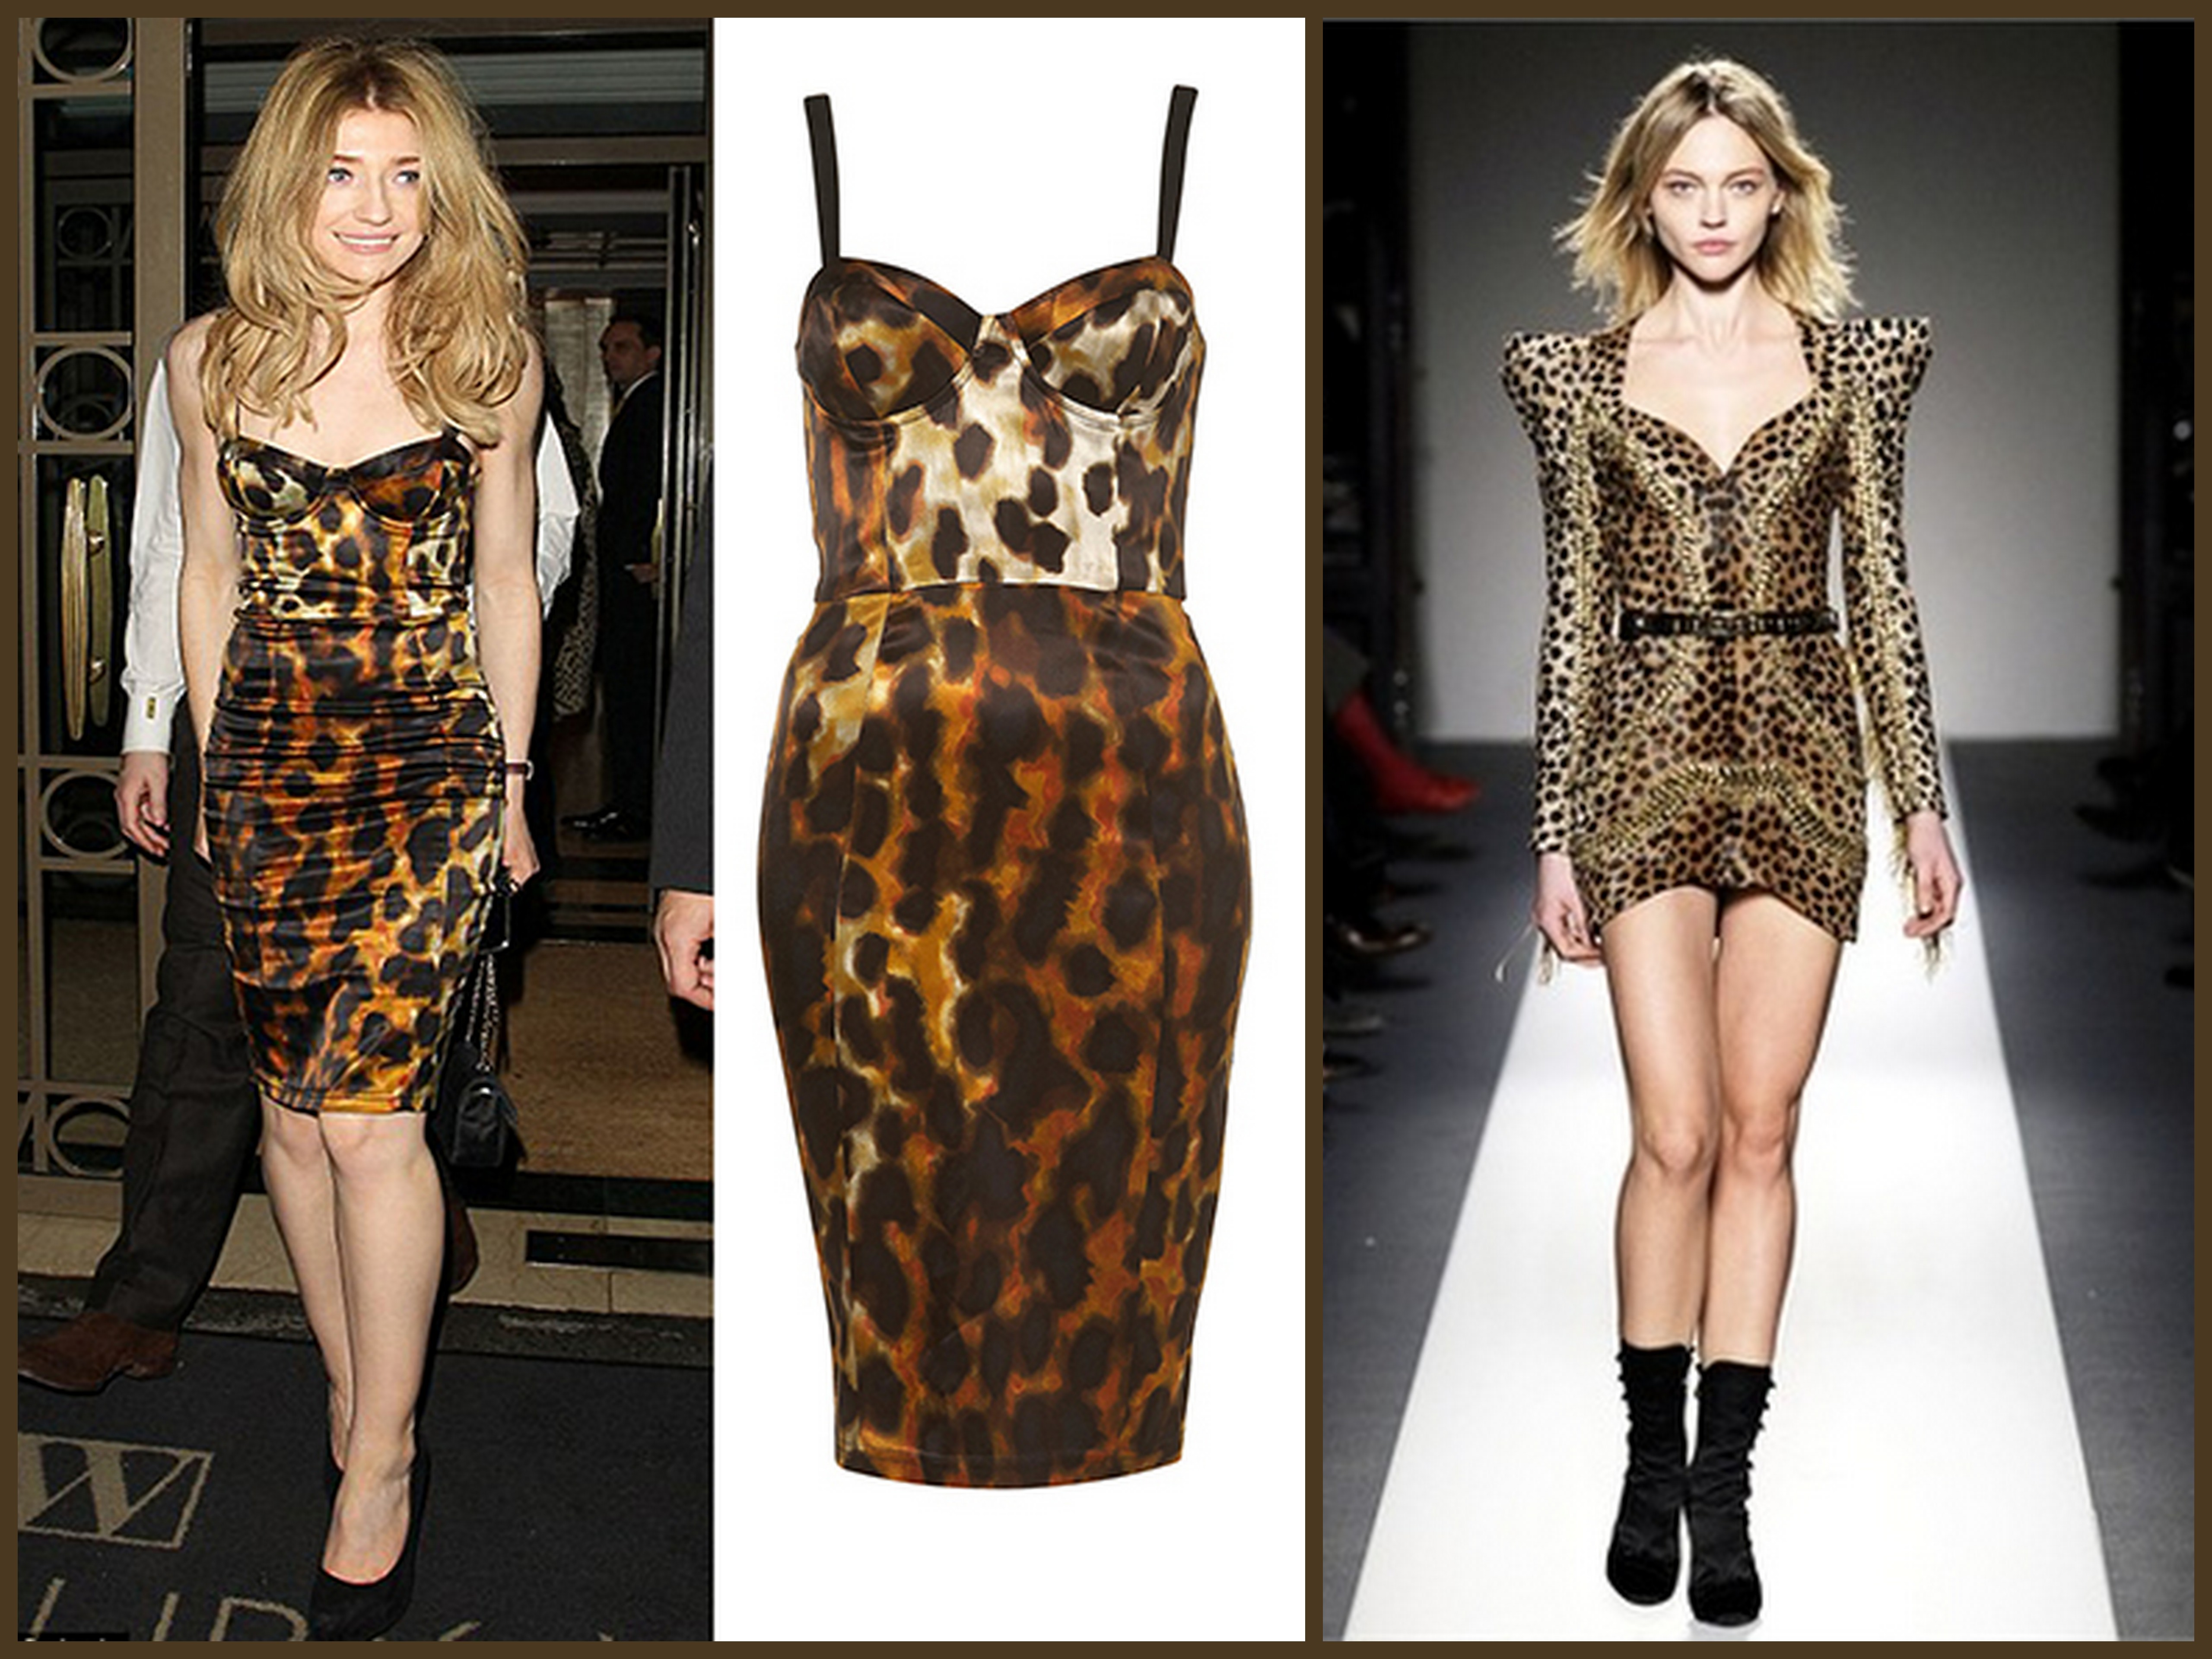 roar down the runway in lovely leopard prints strutting in